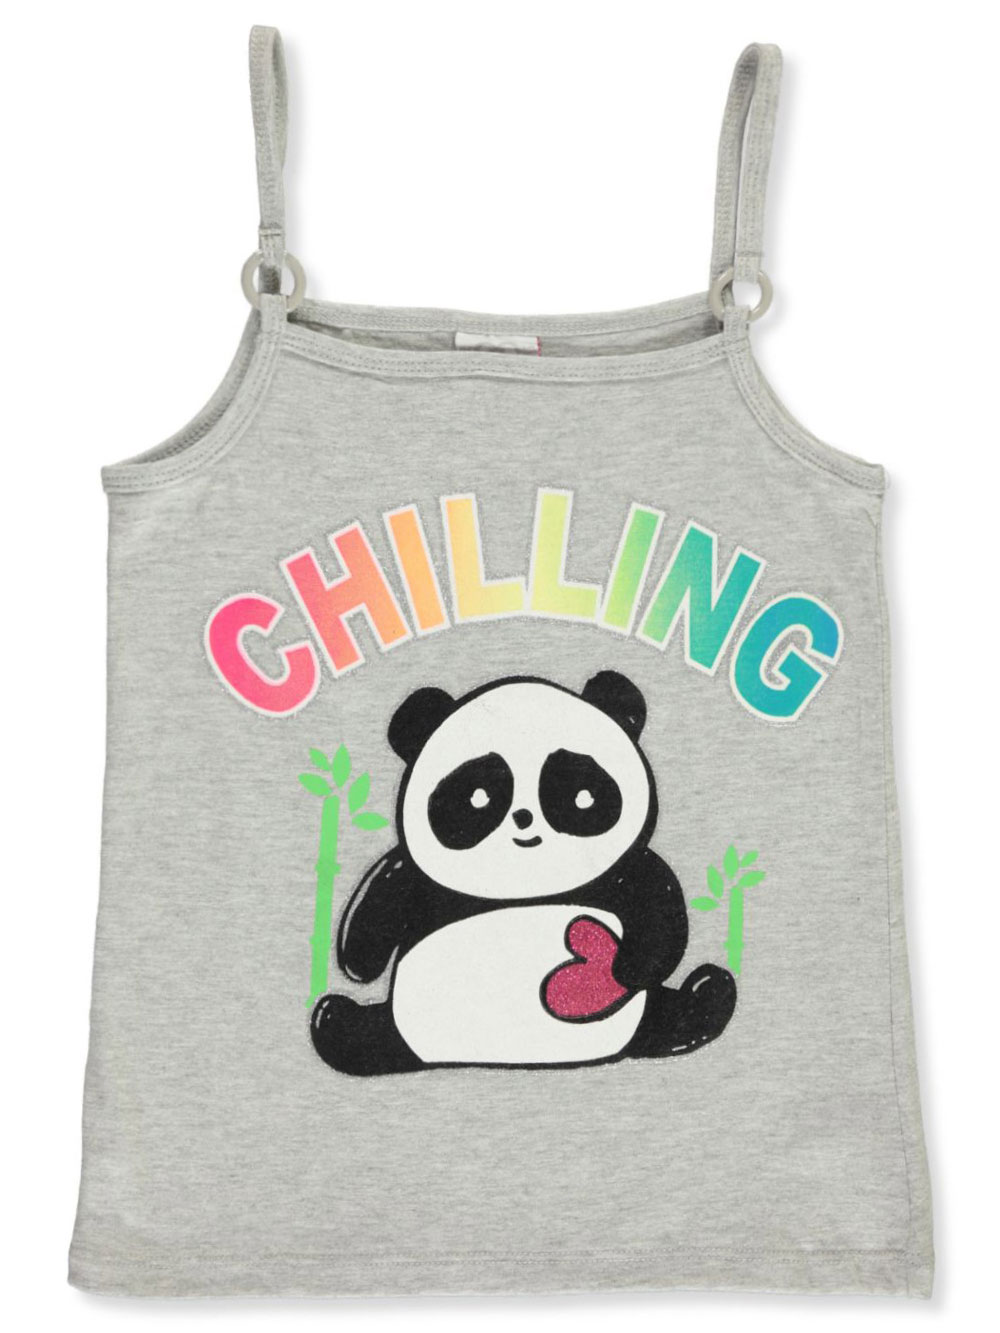 Size 4 Tank Tops for Girls